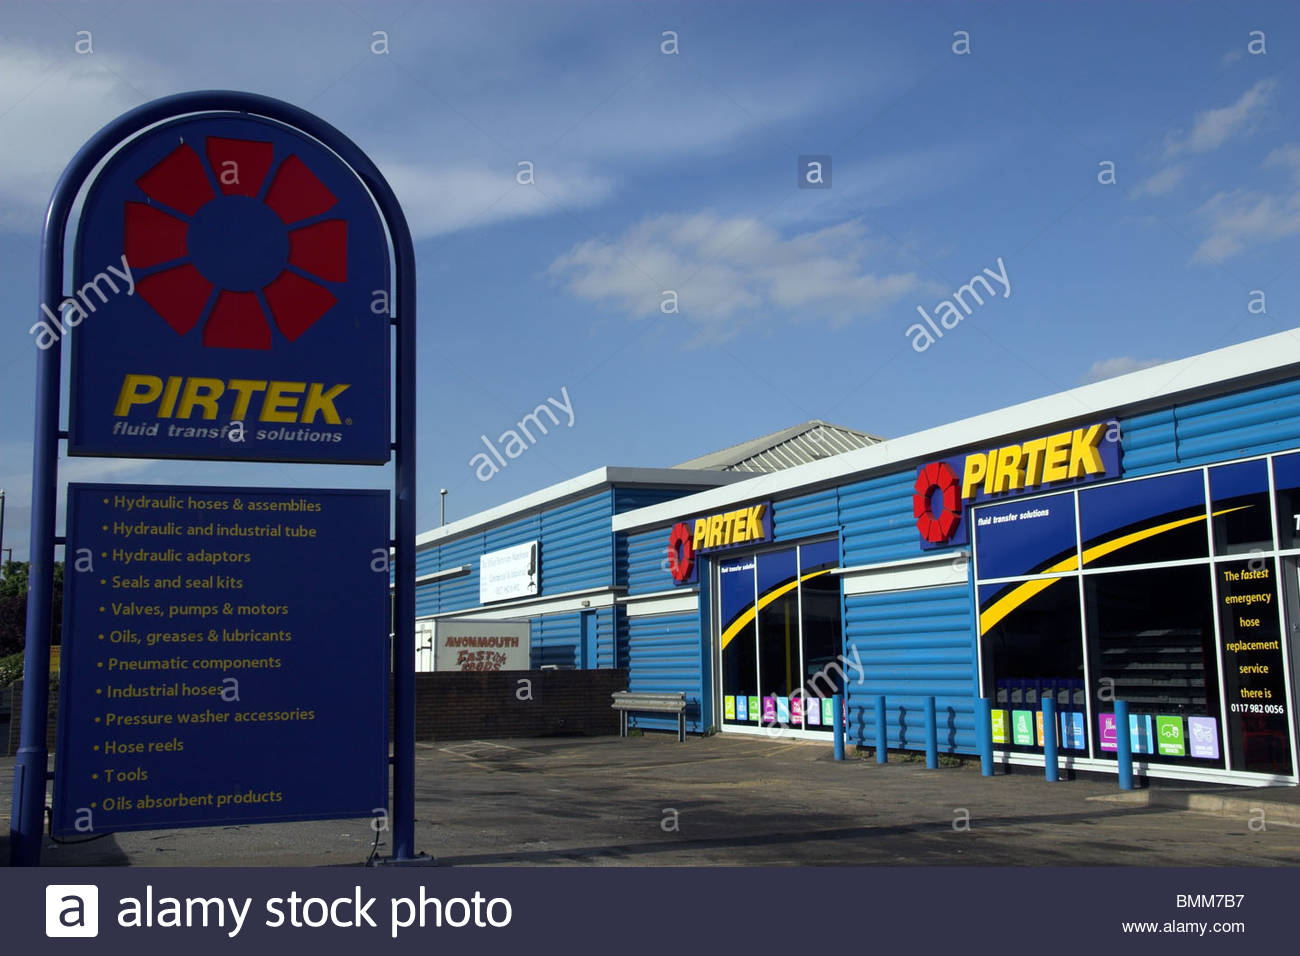 Business premises of Pirtek in Avonmouth, Bristol, UK. - Stock Image